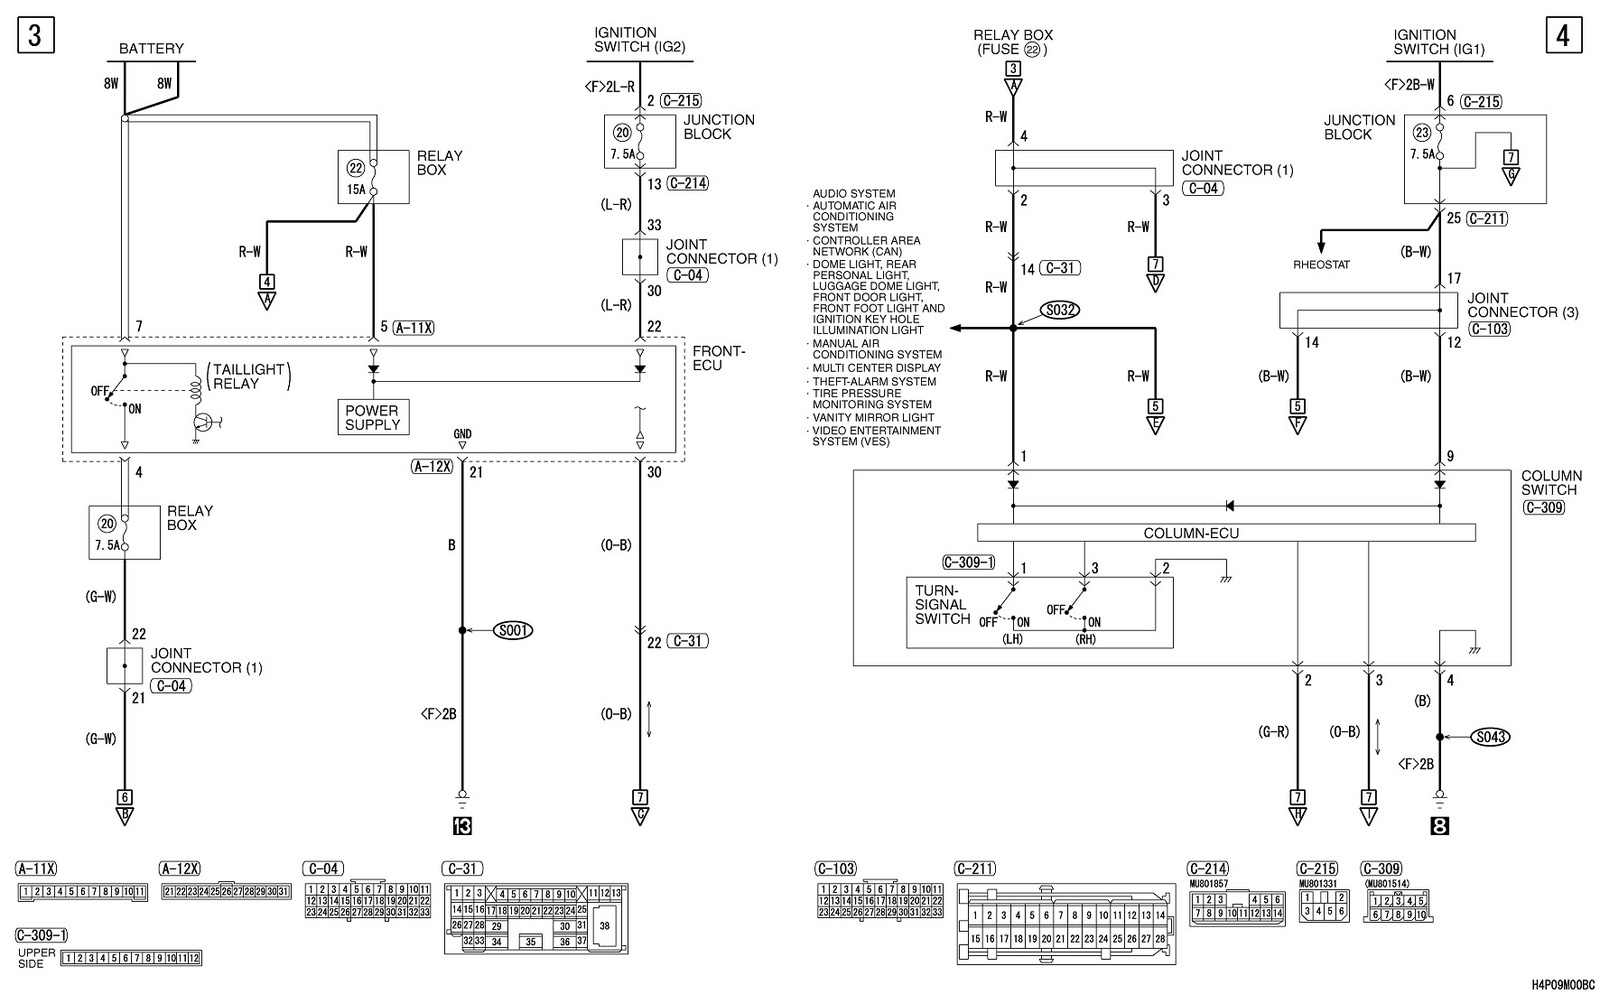 2004 Mitsubishi Galant Radio Wiring Diagram Great Design Of 2002 Eclipse Wire Endeavor Schematics Rh Caltech Ctp Com 2001 2003